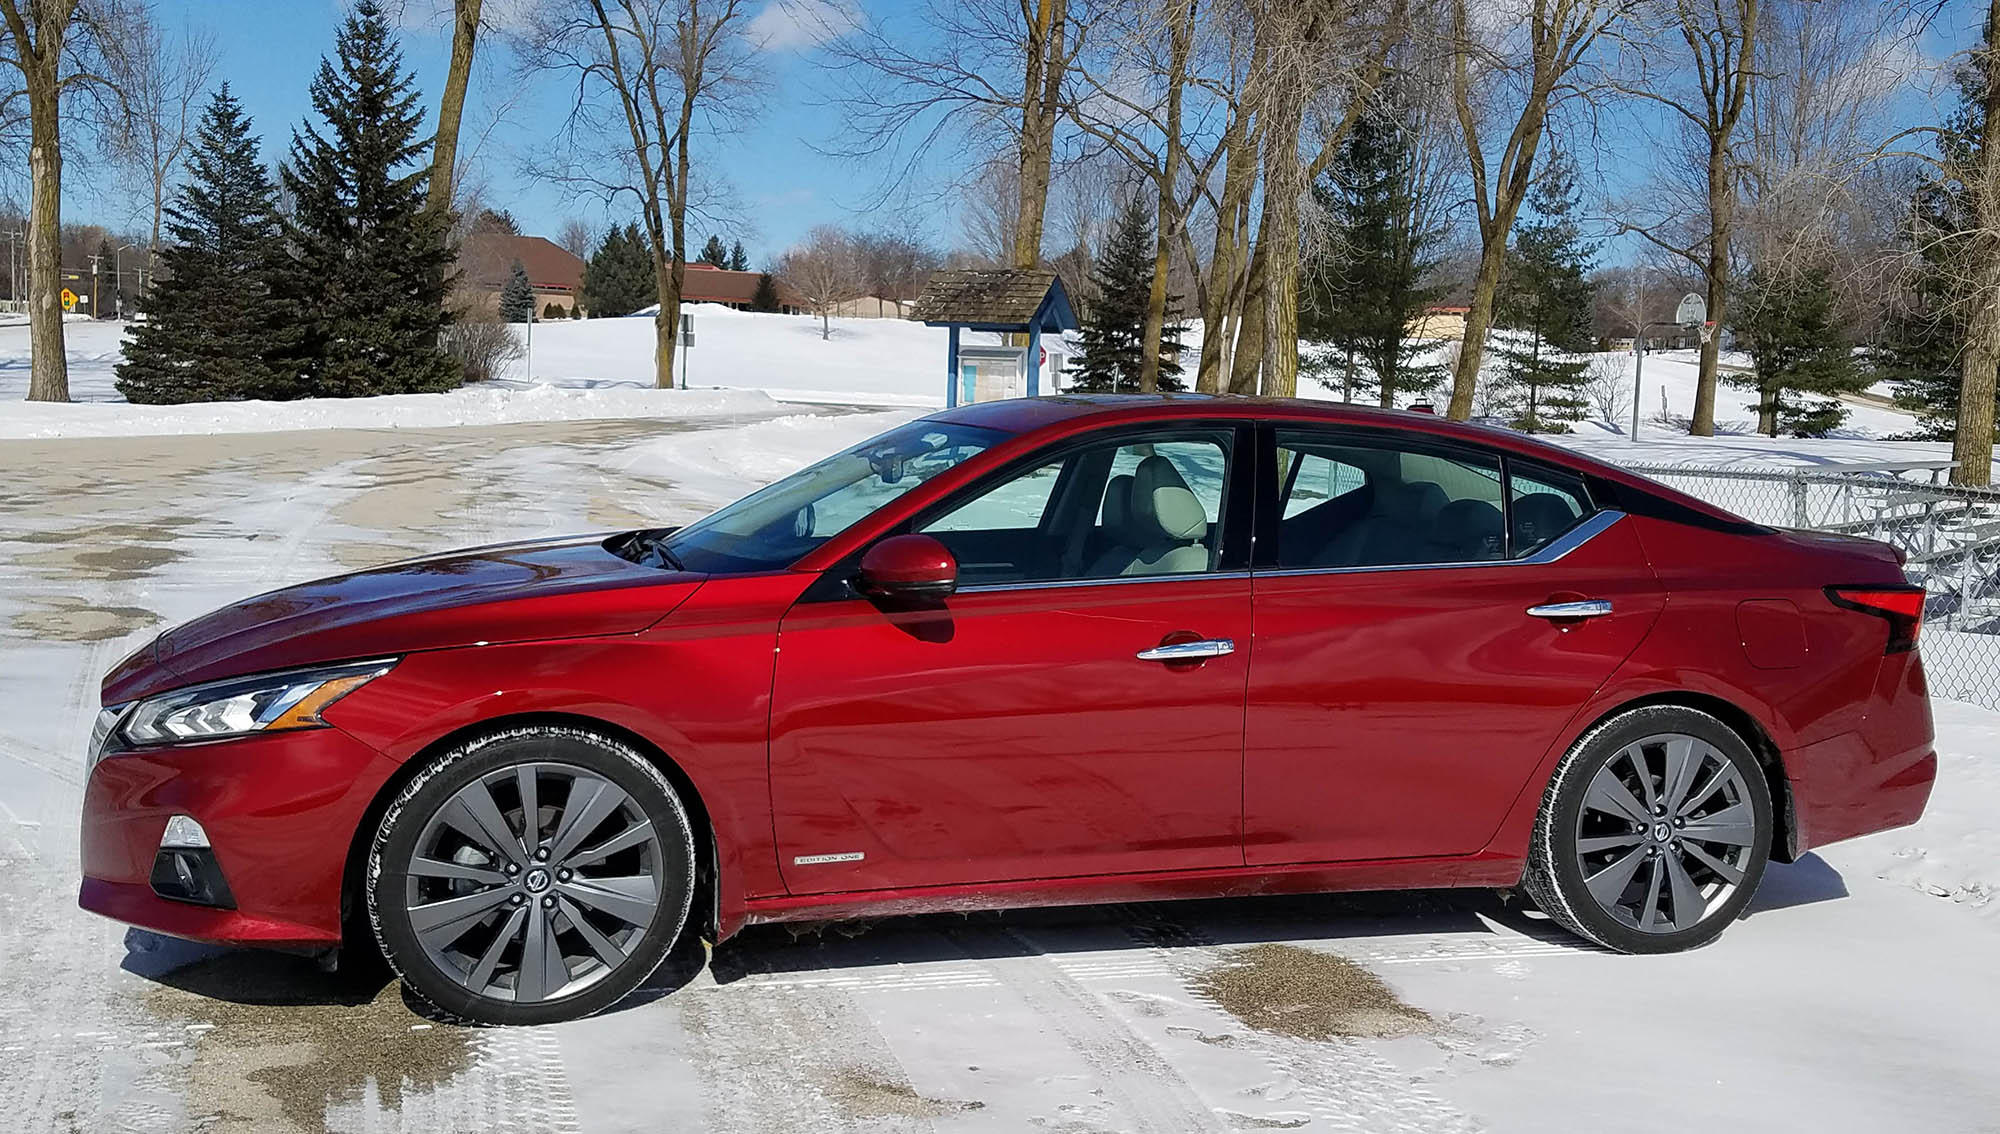 2019 Nissan Altima Edition One Review | WUWM